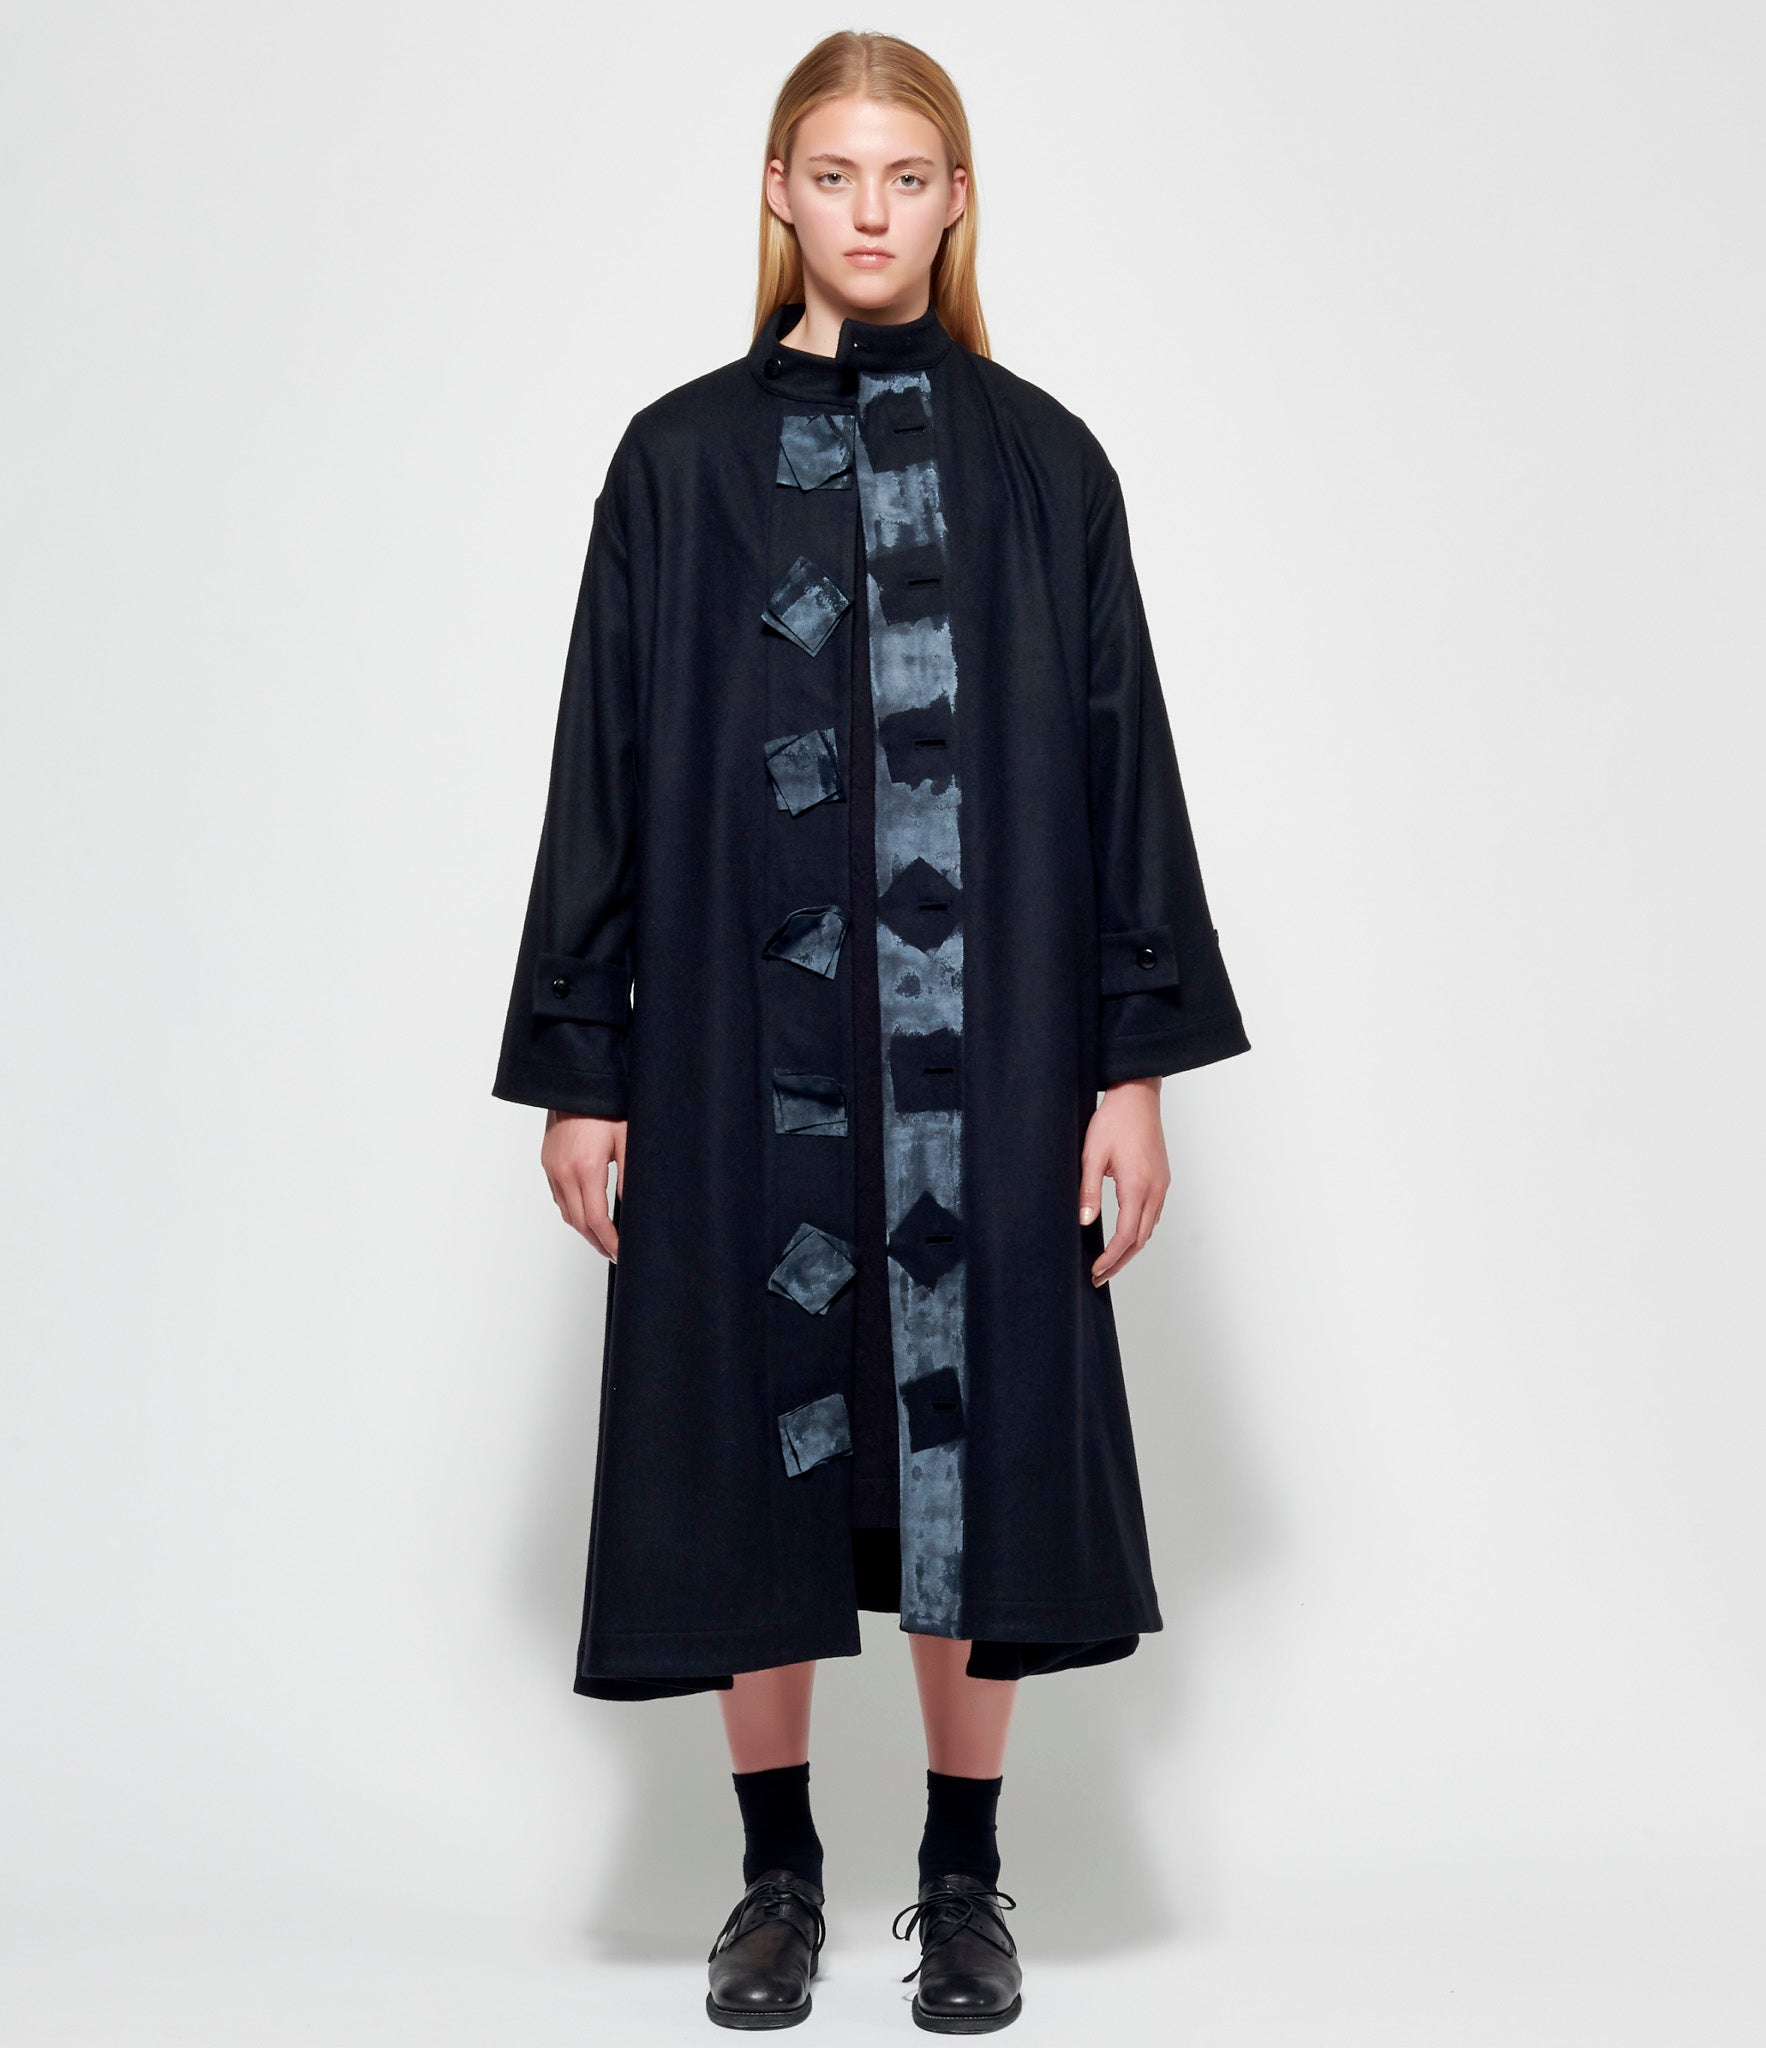 Toogood Limited Edition Hand Cut Artist Coat